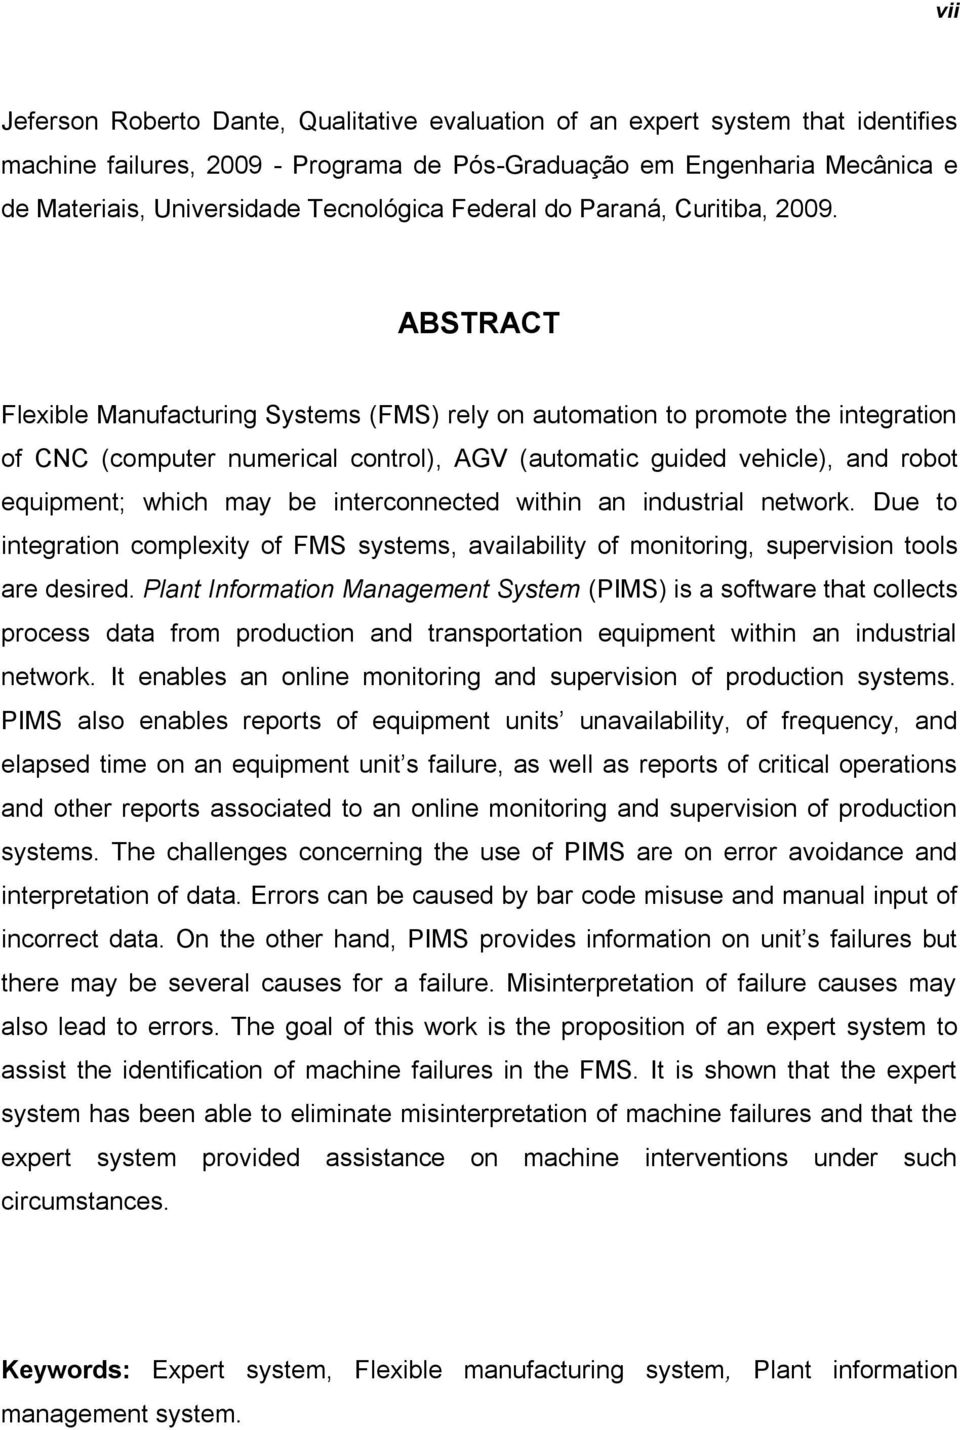 ABSTRACT Flexible Manufacturing Systems (FMS) rely on automation to promote the integration of CNC (computer numerical control), AGV (automatic guided vehicle), and robot equipment; which may be